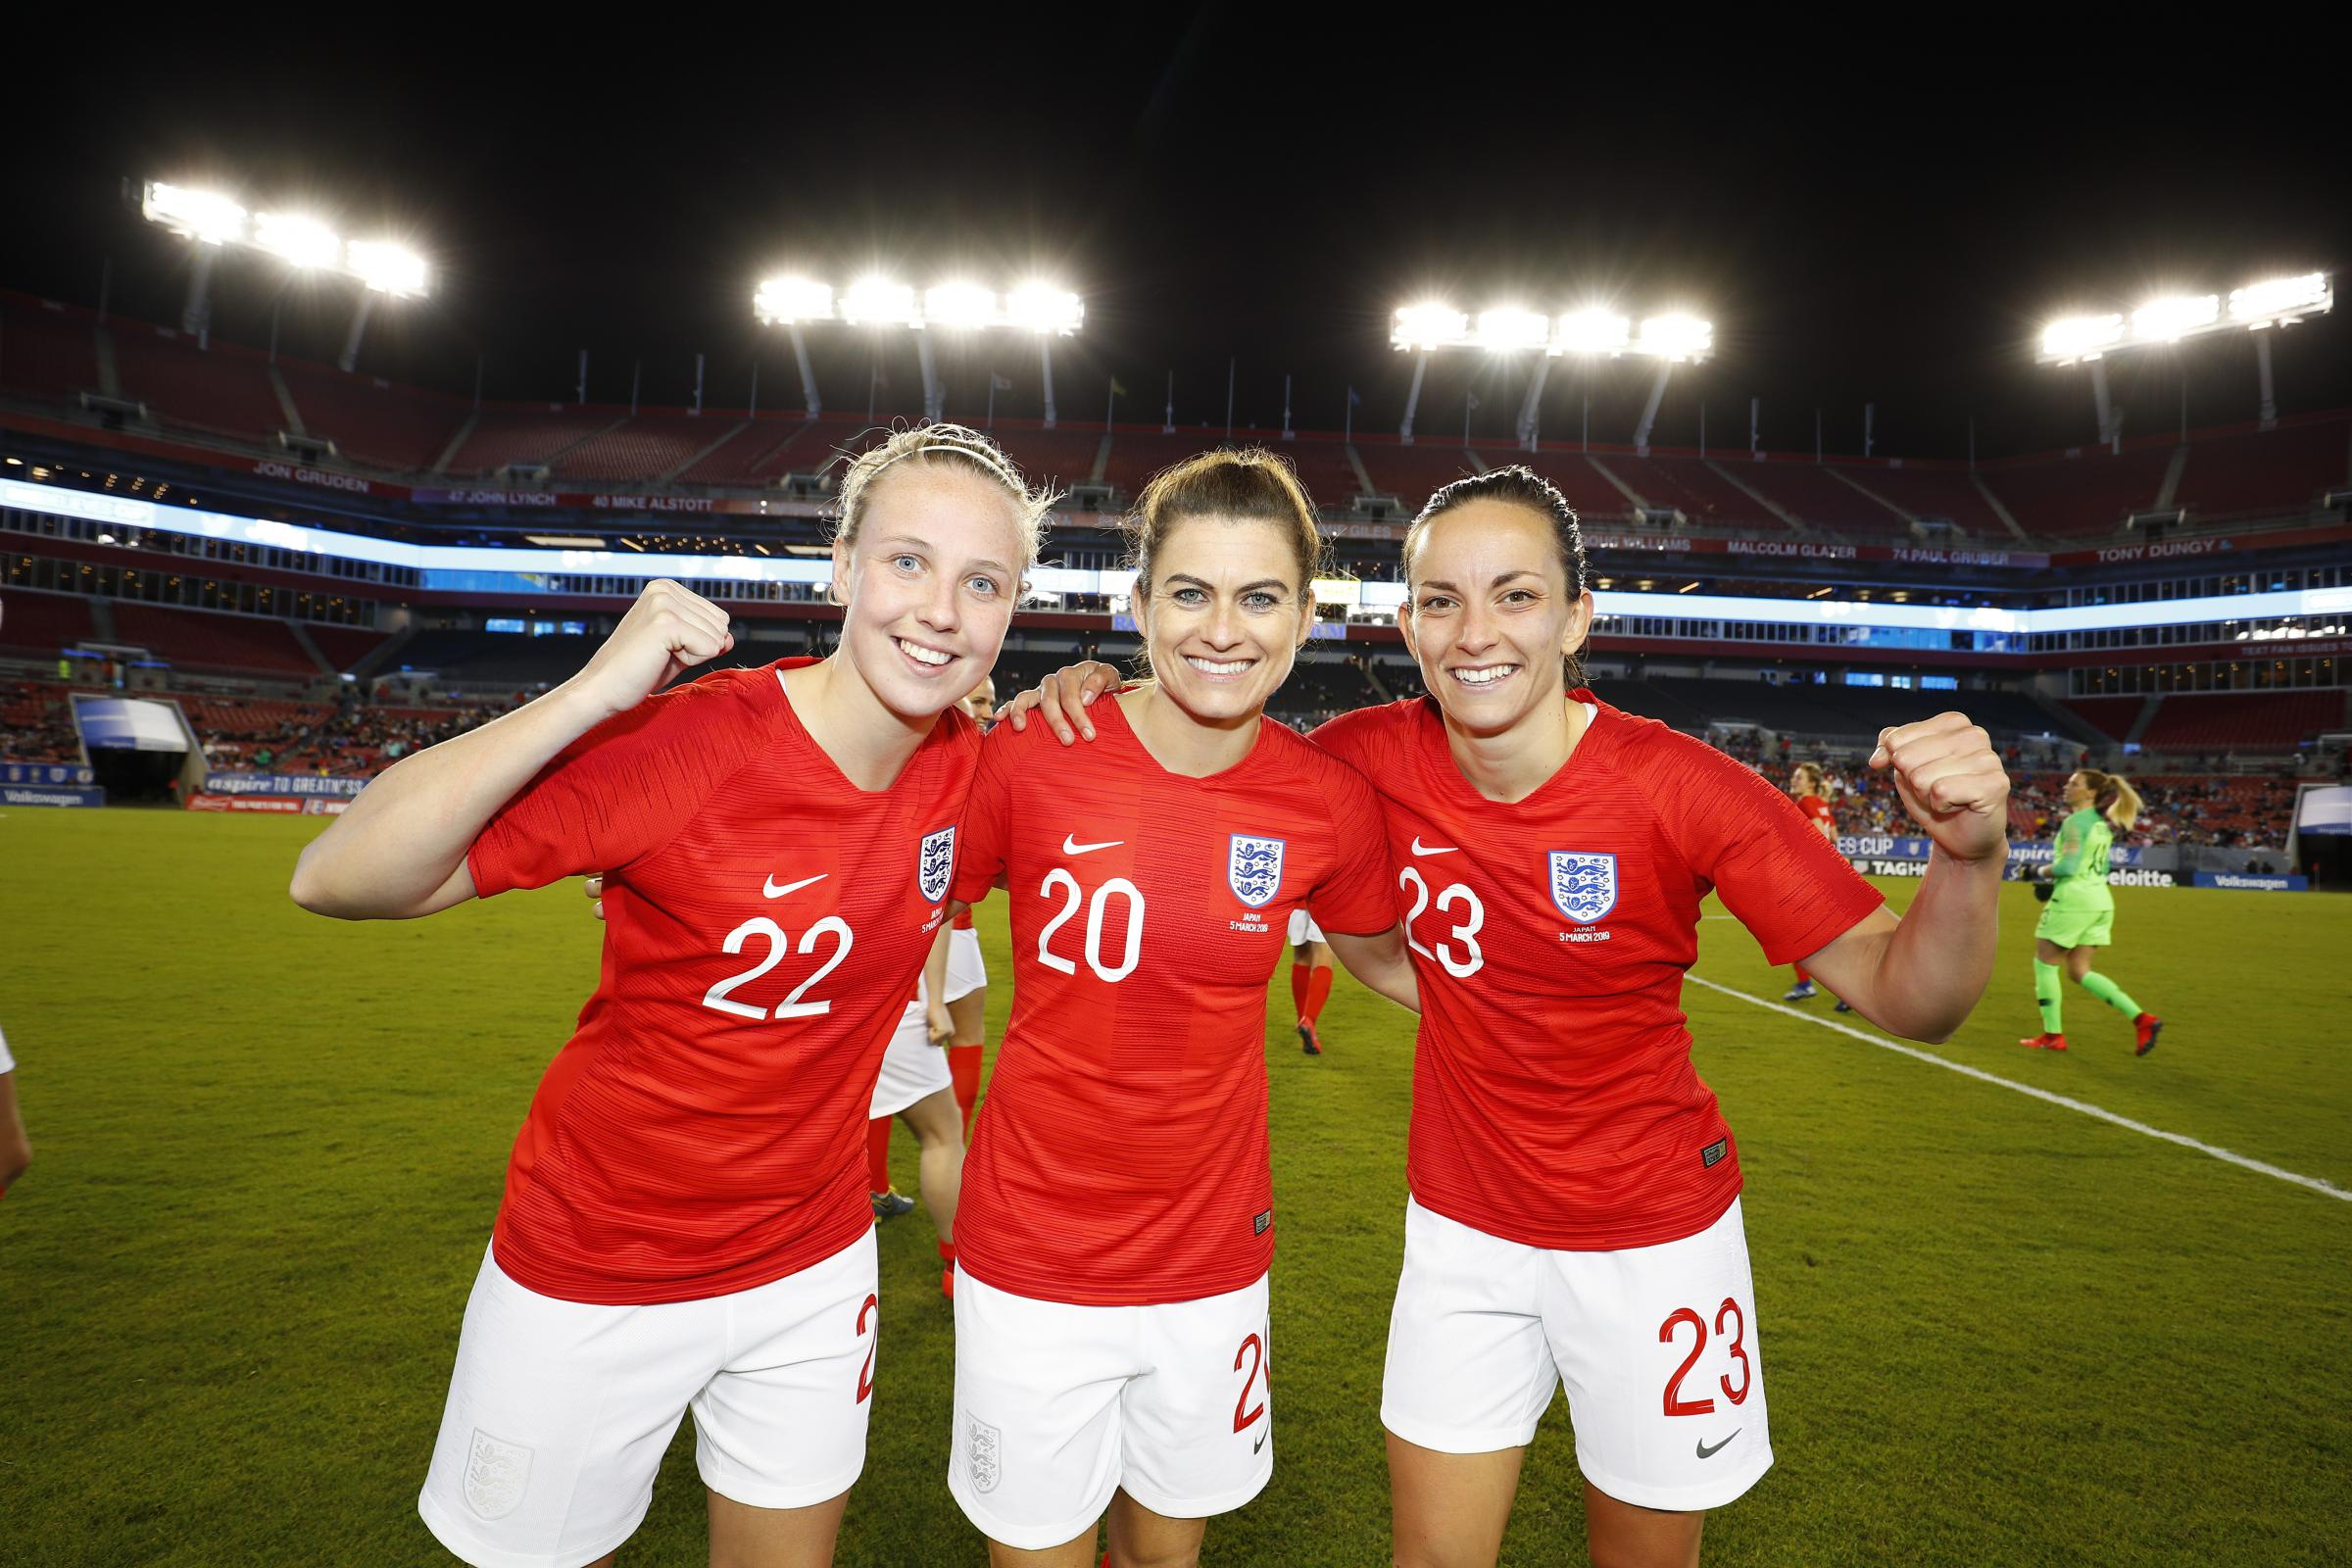 Beth Mead, Karen Carney and Lucy Stanifort celebrate winning the SheBelieves Cup